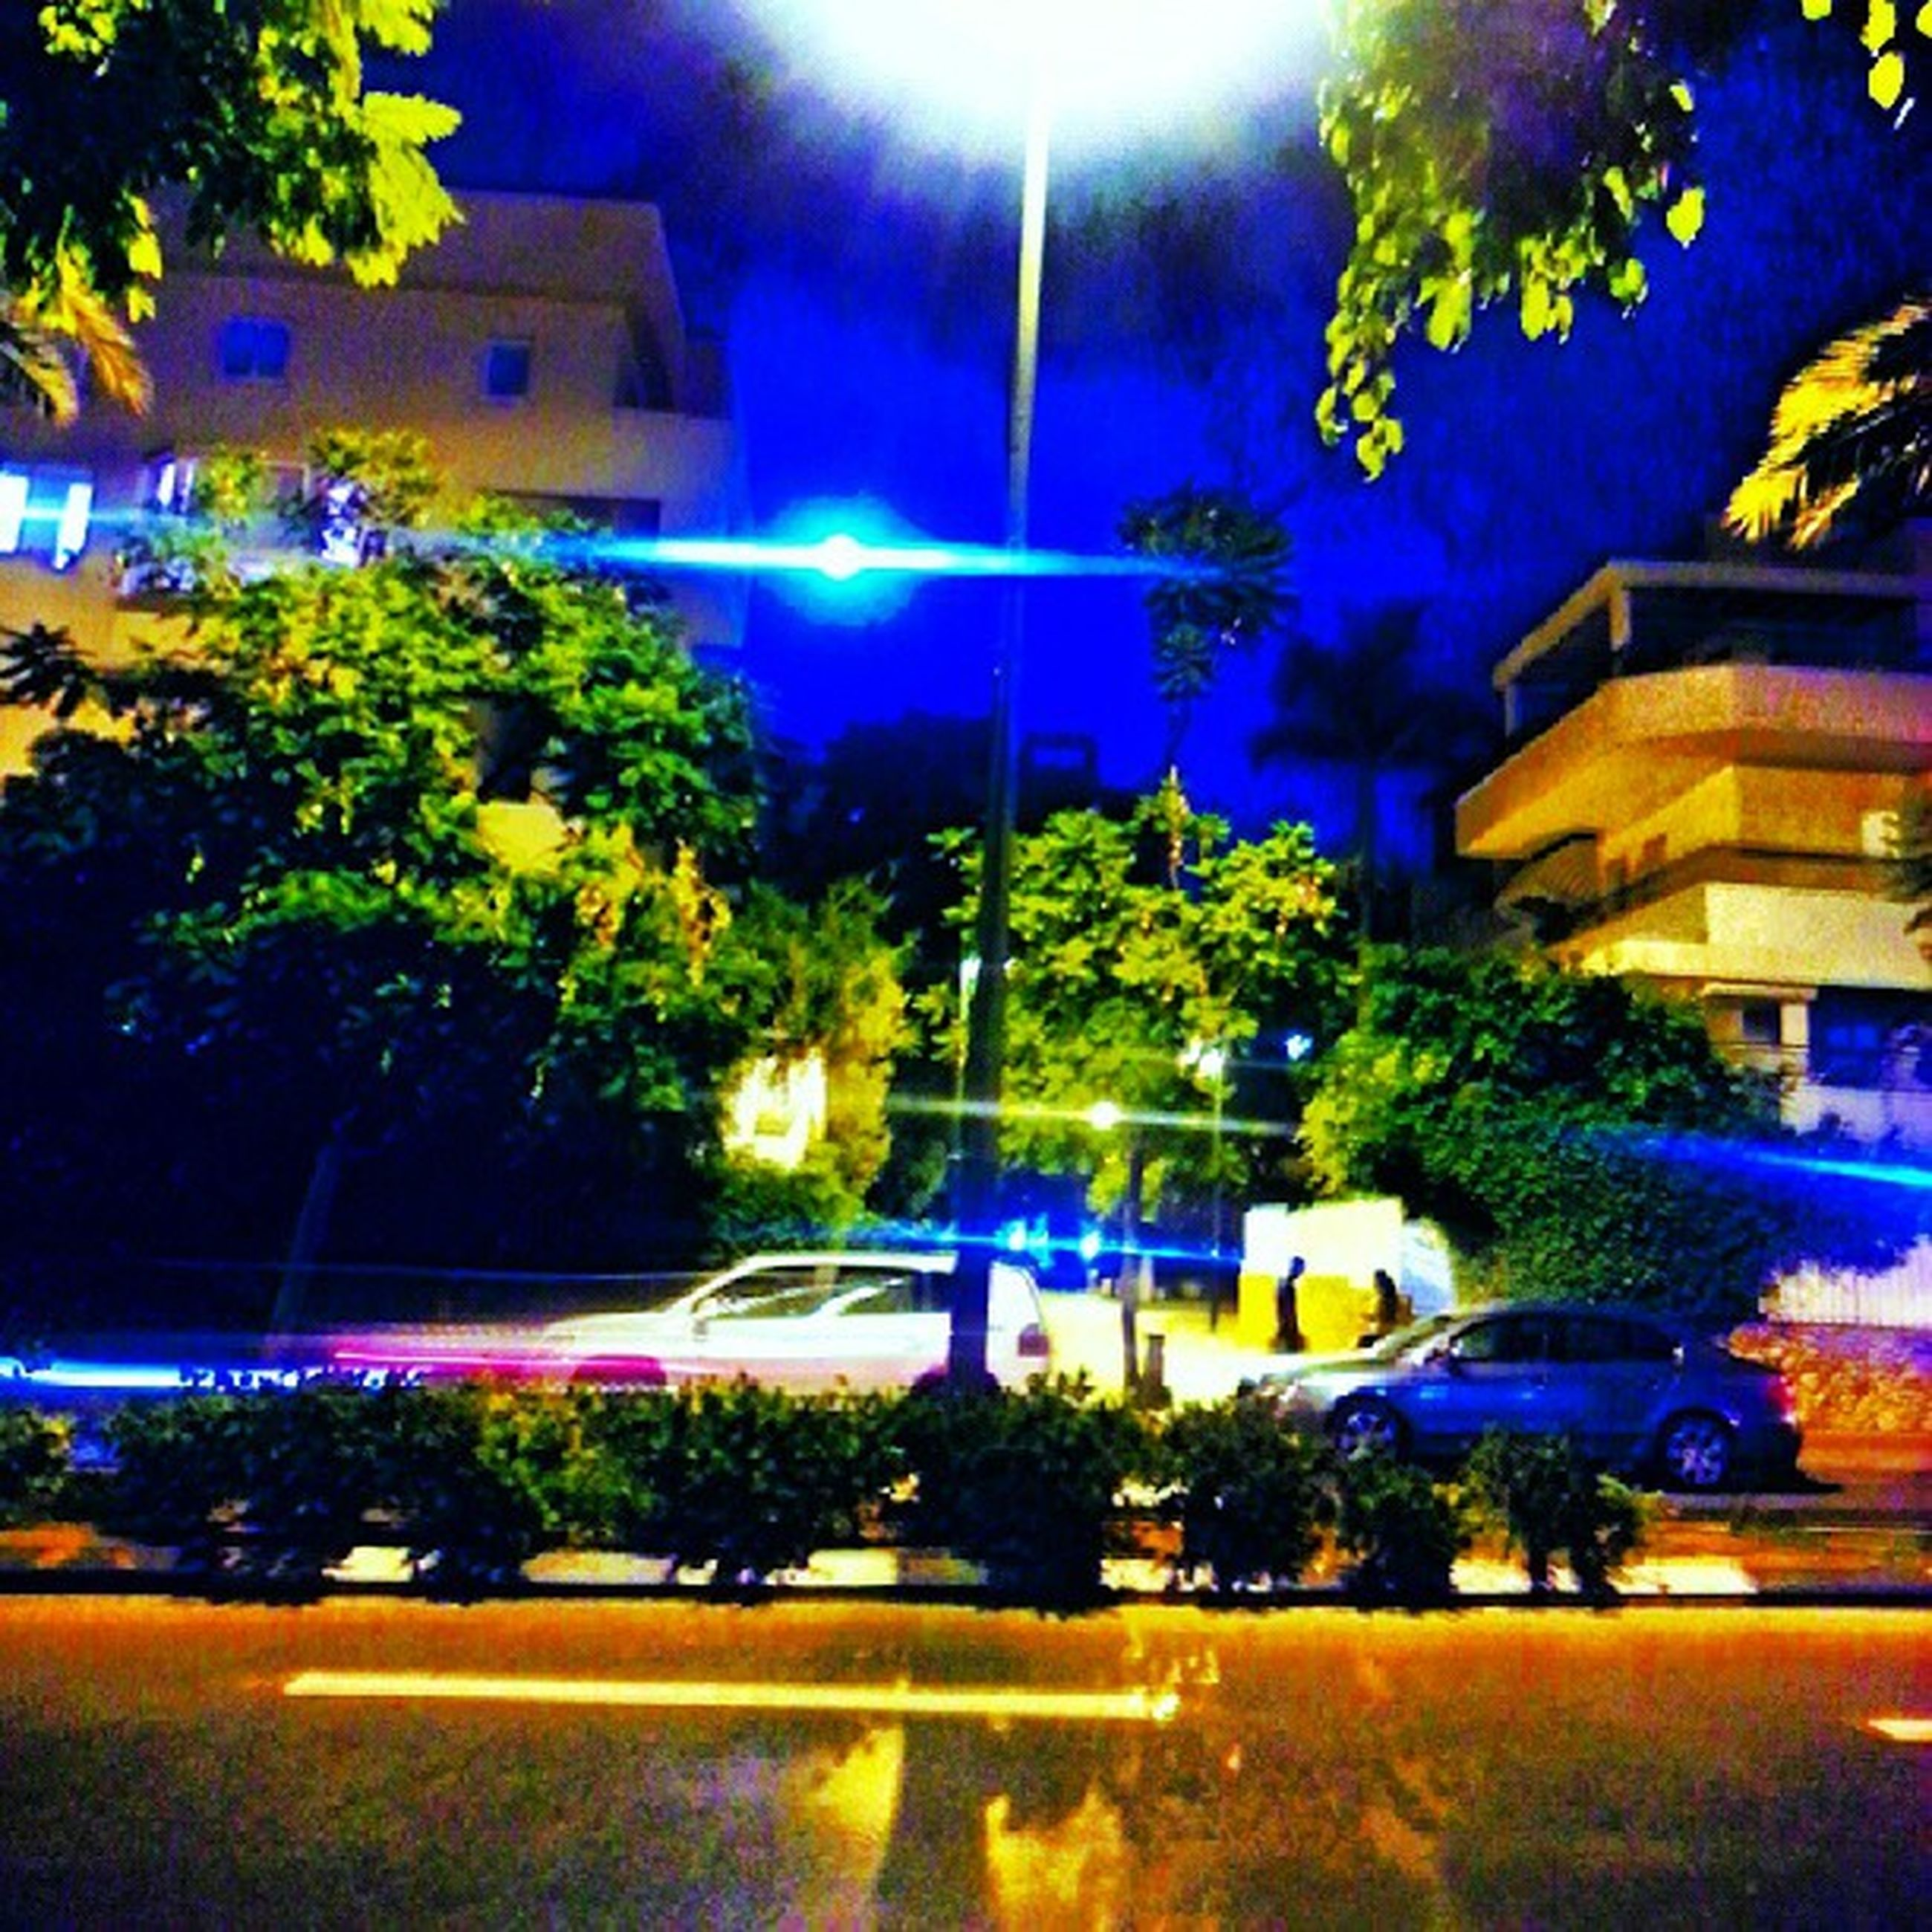 building exterior, tree, architecture, illuminated, built structure, city, night, street light, residential building, street, growth, house, residential structure, building, lighting equipment, car, outdoors, plant, incidental people, multi colored